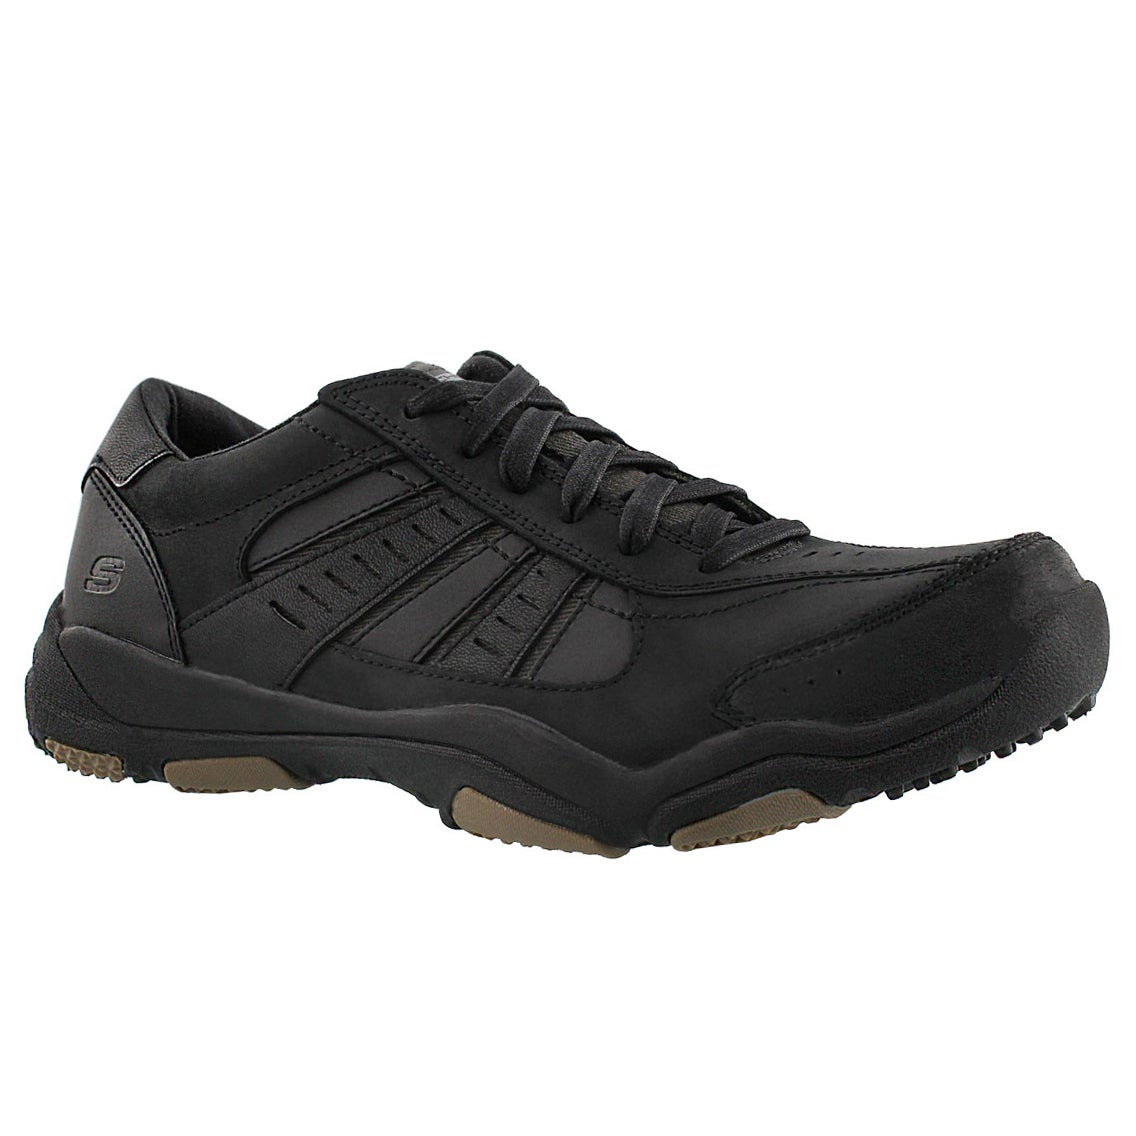 Men's LARSON NERICK black bike toe sneaker